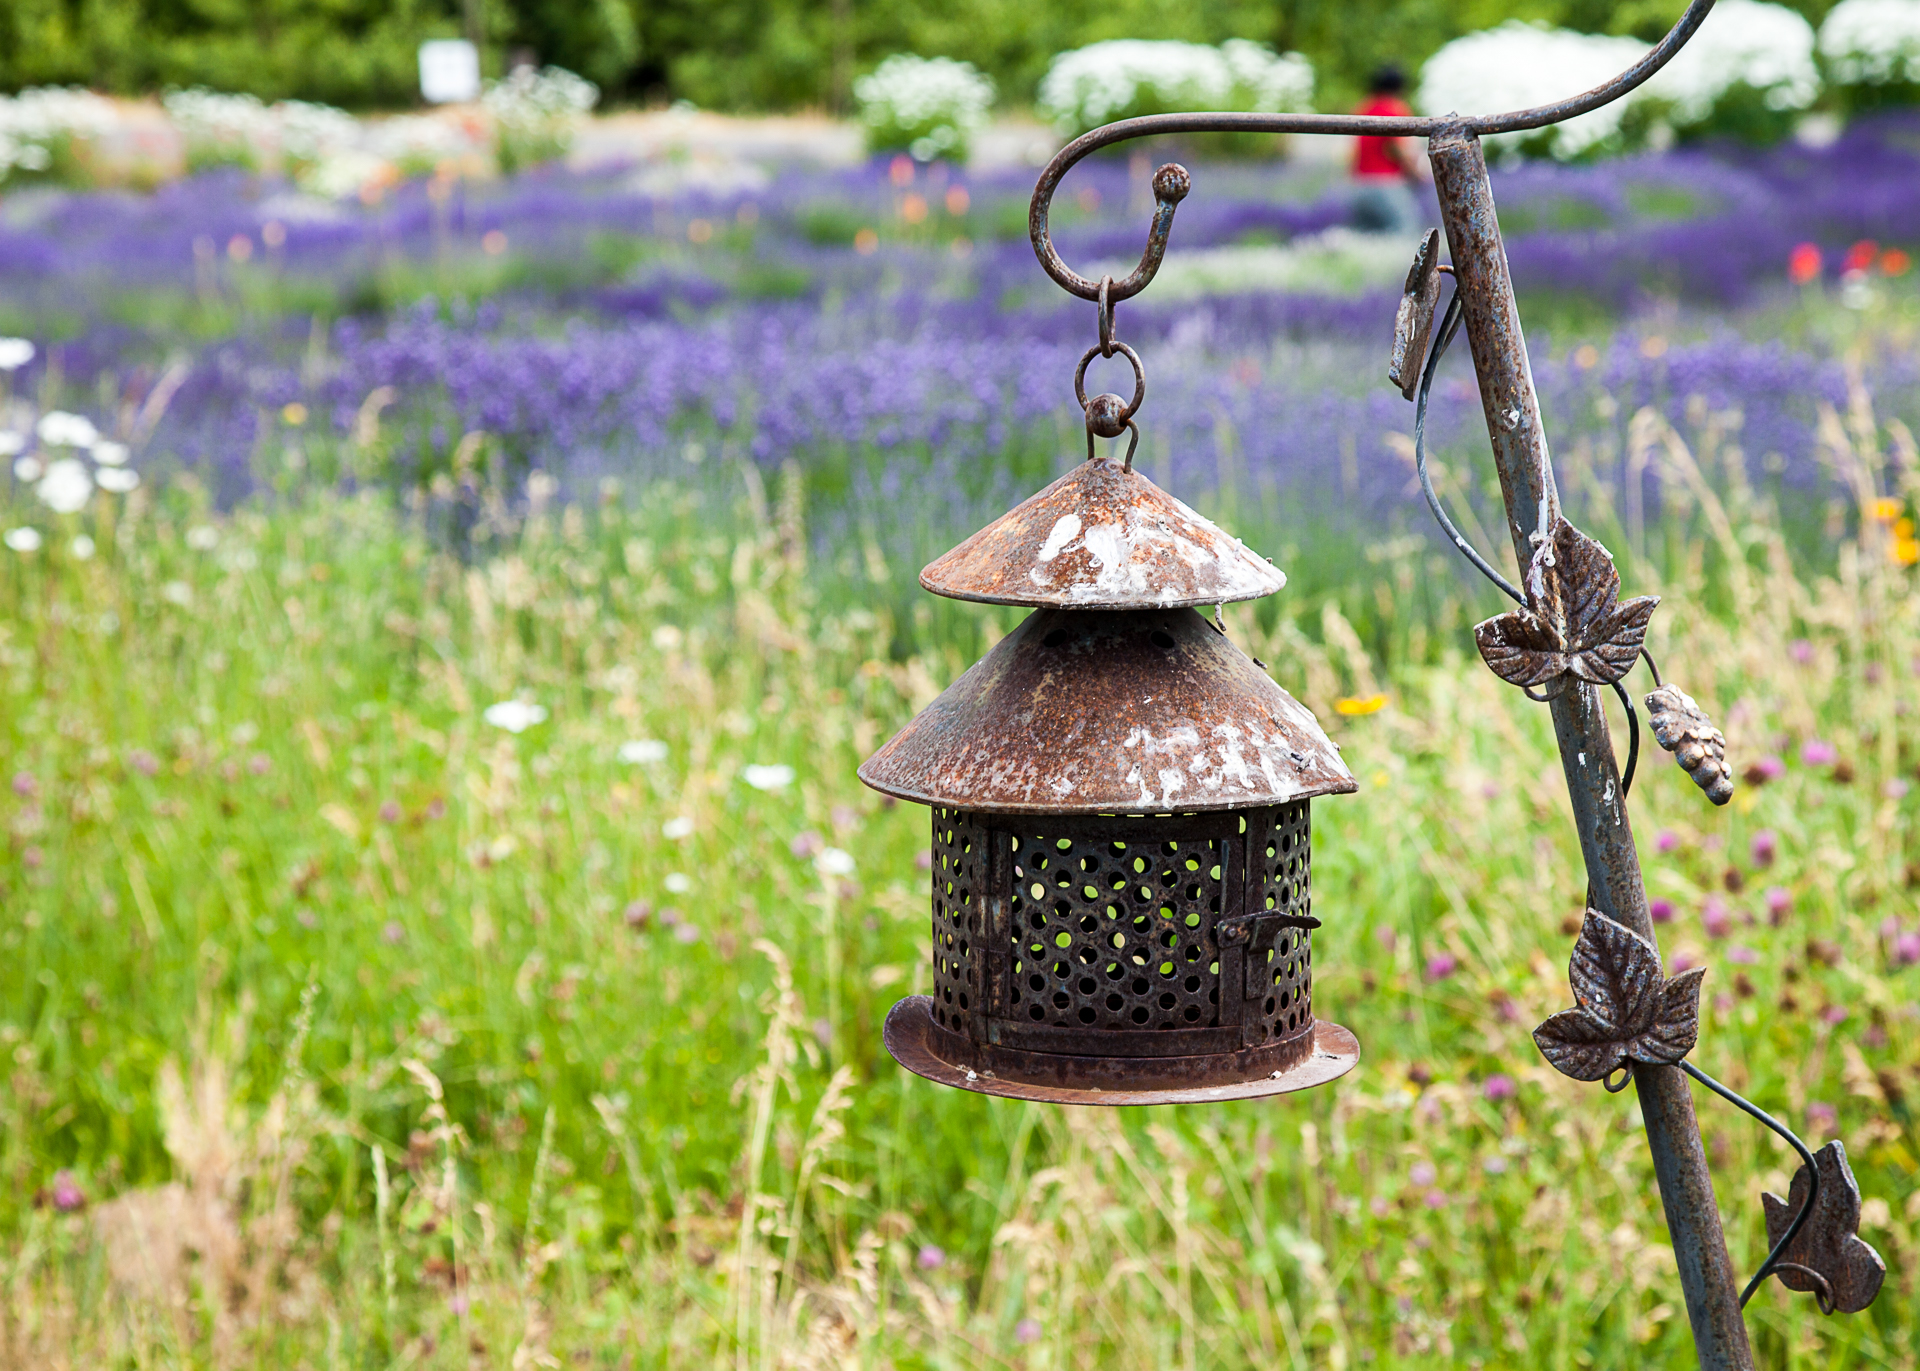 Some of the more interesting decoration around the lavender farm.